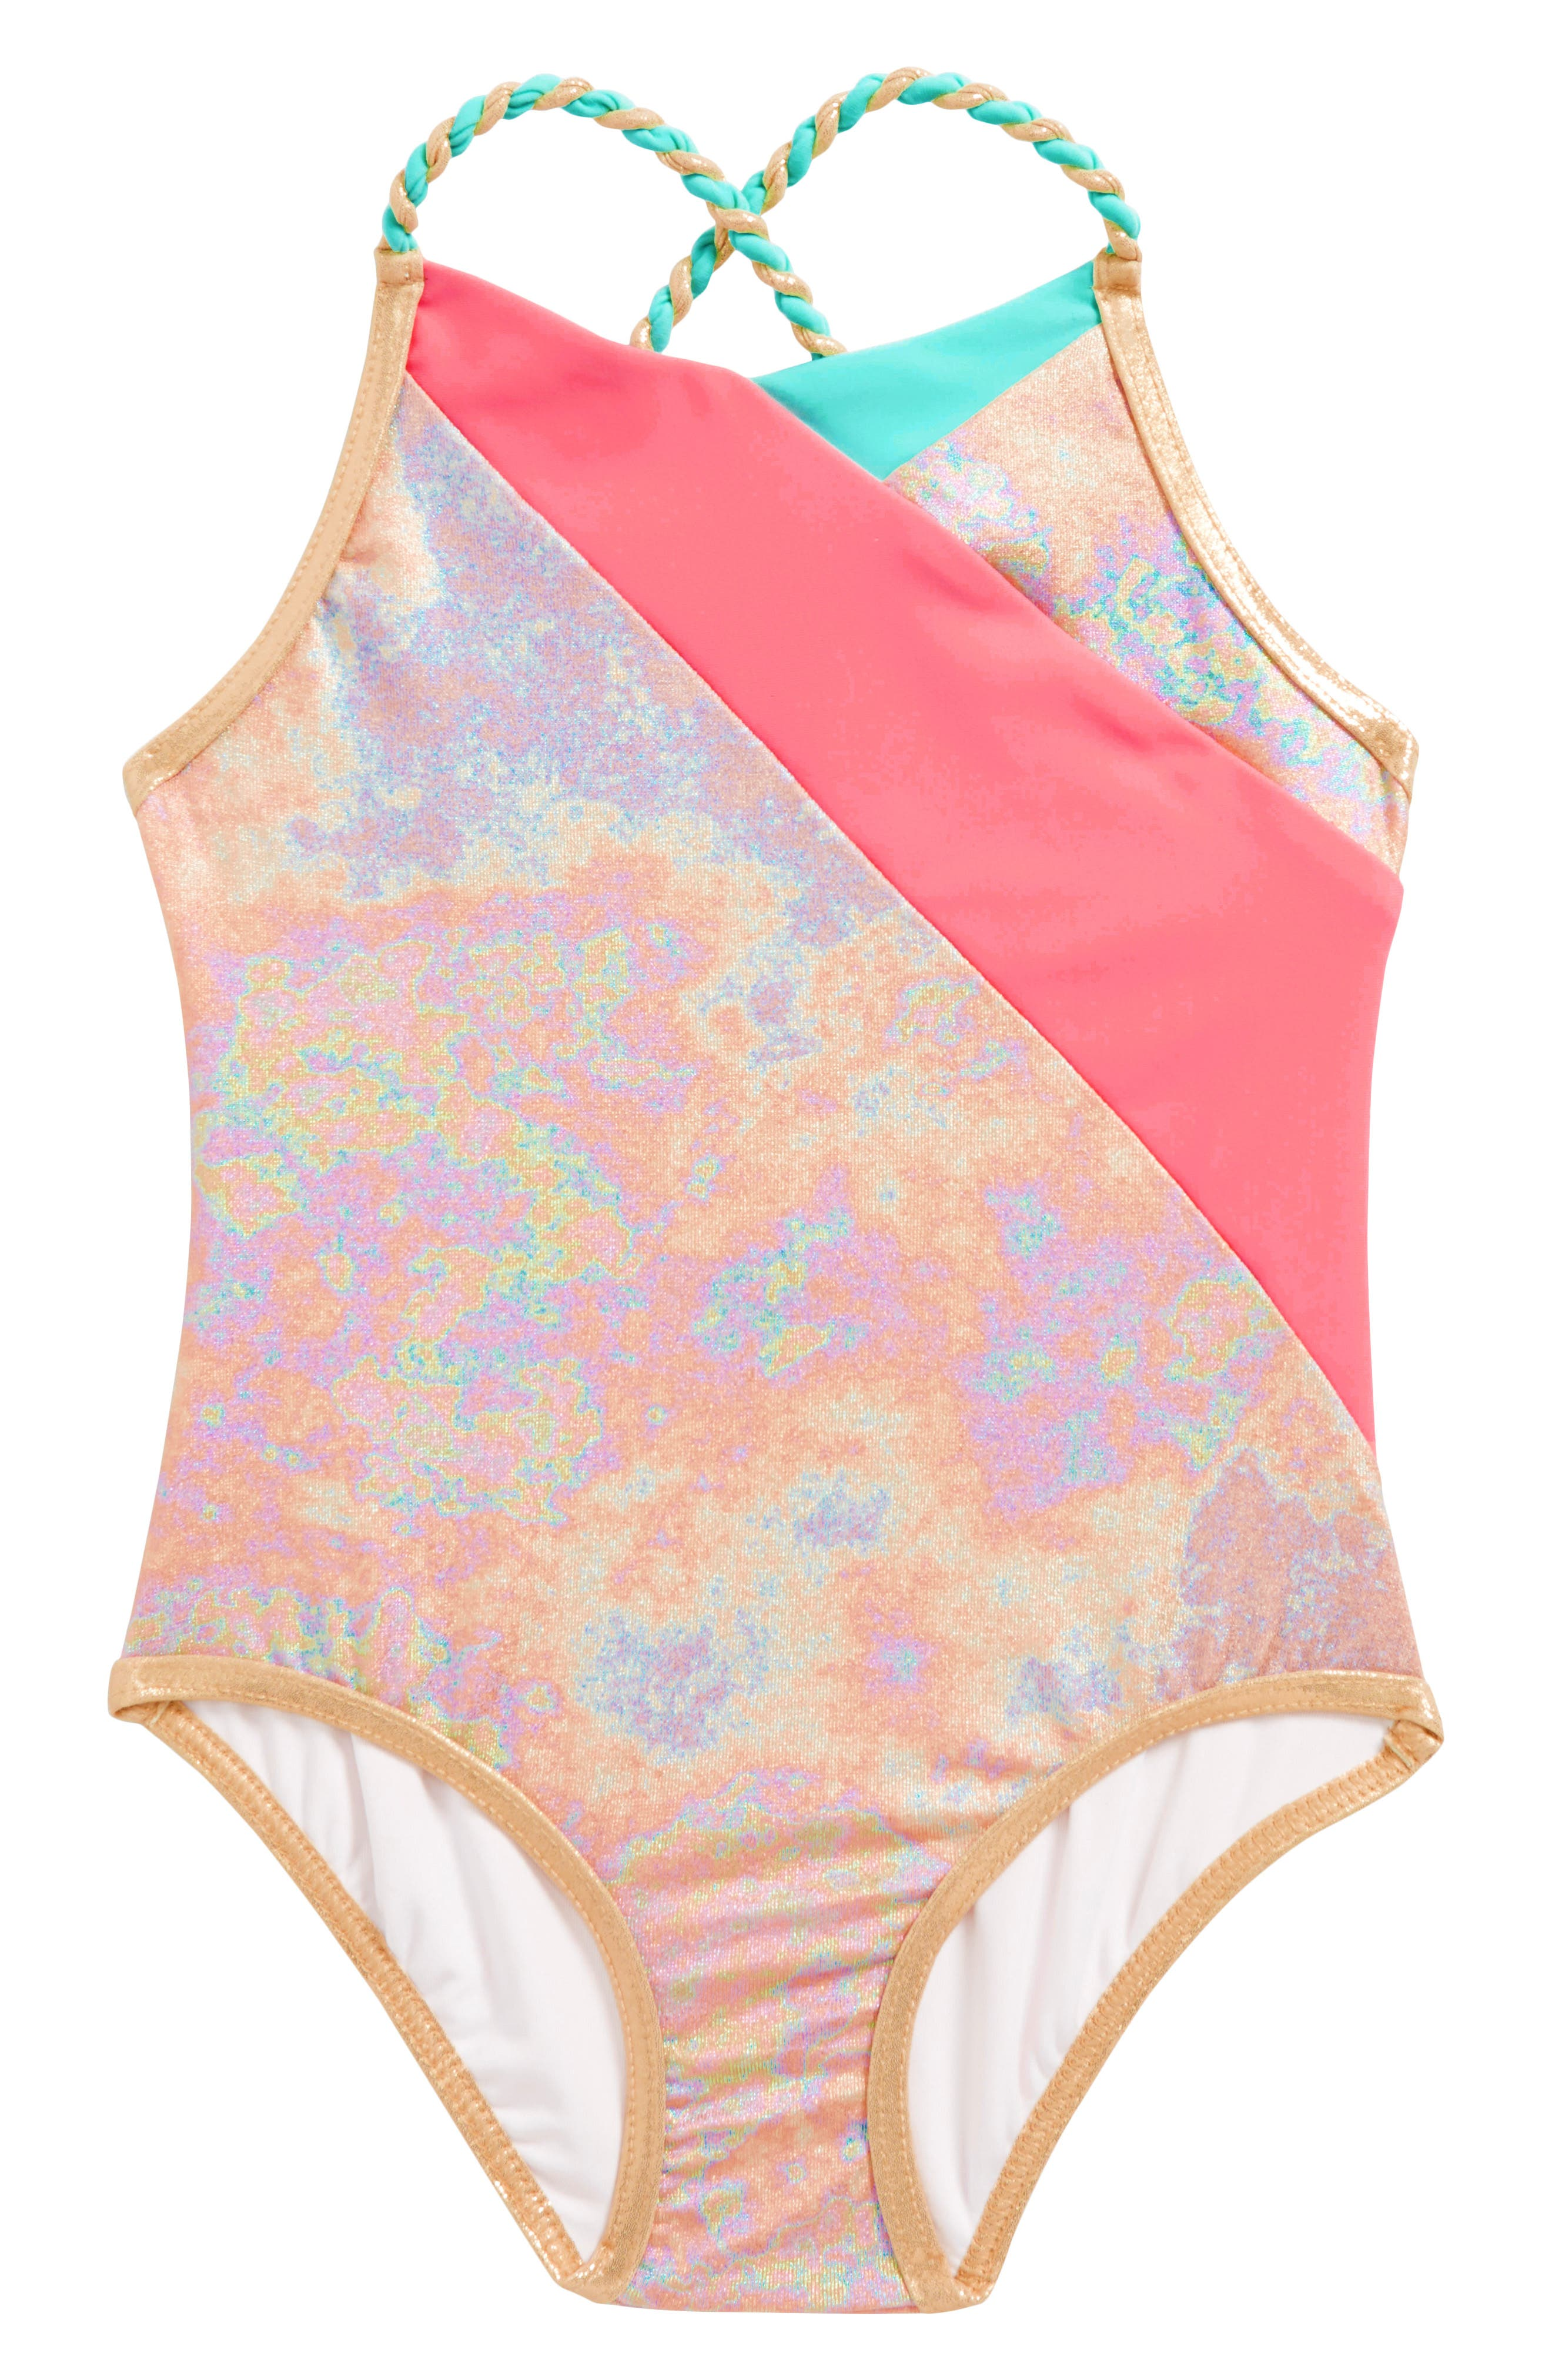 Alternate Image 1 Selected - LITTLE MARC JACOBS Iridescent One-Piece Swimsuit (Toddler Girls, Little Girls & Big Girls)